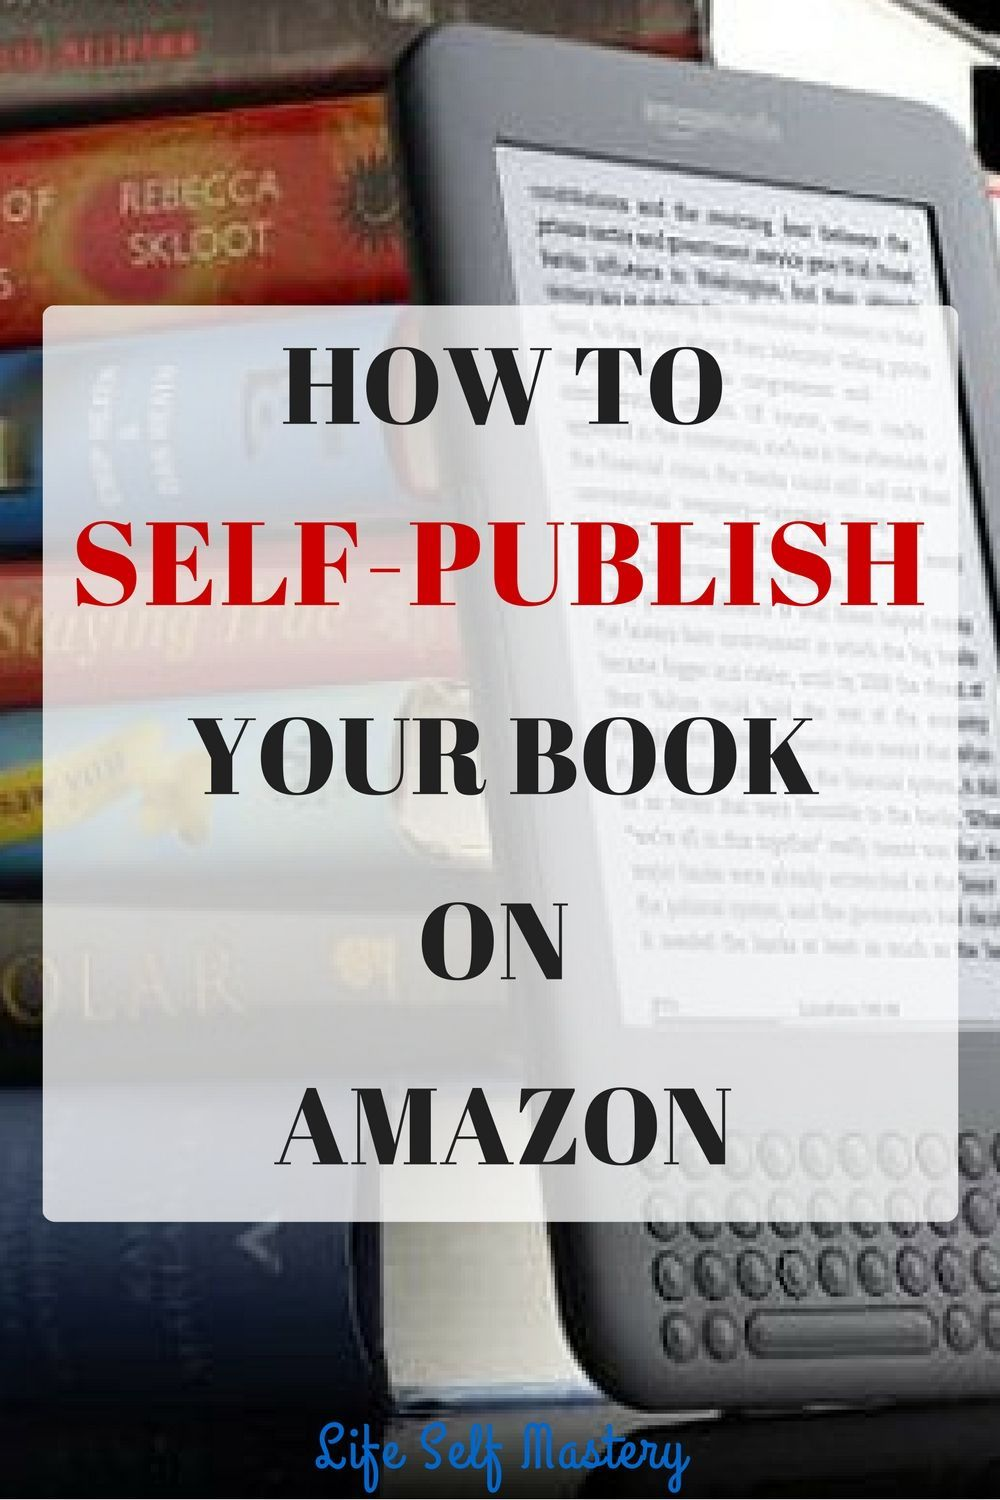 How to selfpublish your book on Amazon and make passive